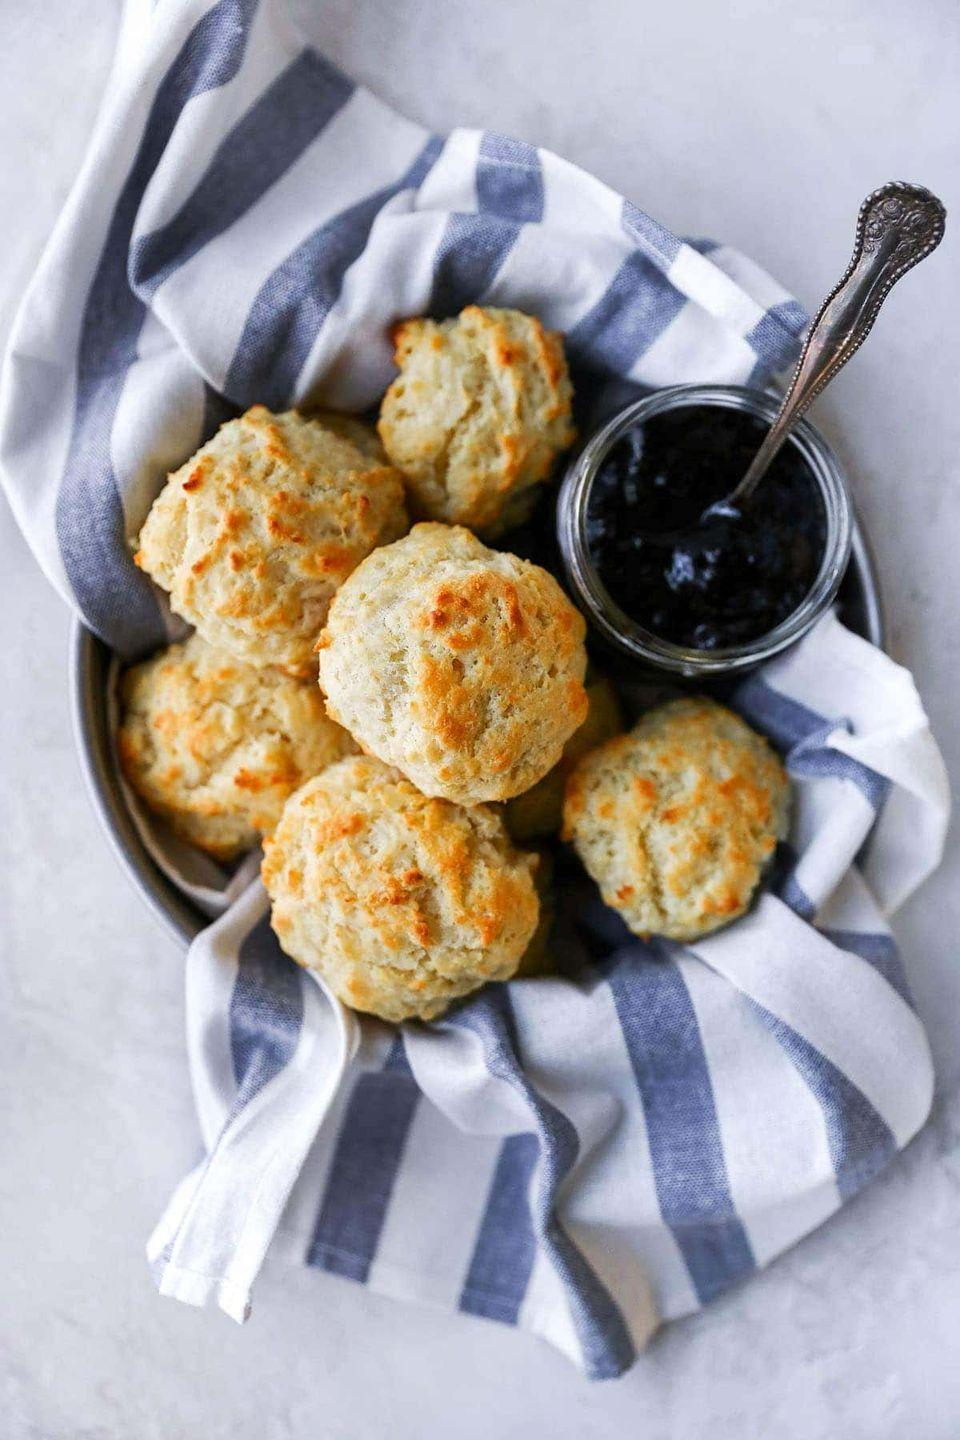 """<p>Though biscuits have decidedly Southern roots, no cookout should be complete without this decadent, go-with-anything side. </p><p><a href=""""https://www.twopeasandtheirpod.com/recipe-for-buttermilk-drop-biscuits/"""" rel=""""nofollow noopener"""" target=""""_blank"""" data-ylk=""""slk:Get the recipe."""" class=""""link rapid-noclick-resp"""">Get the recipe. </a></p>"""